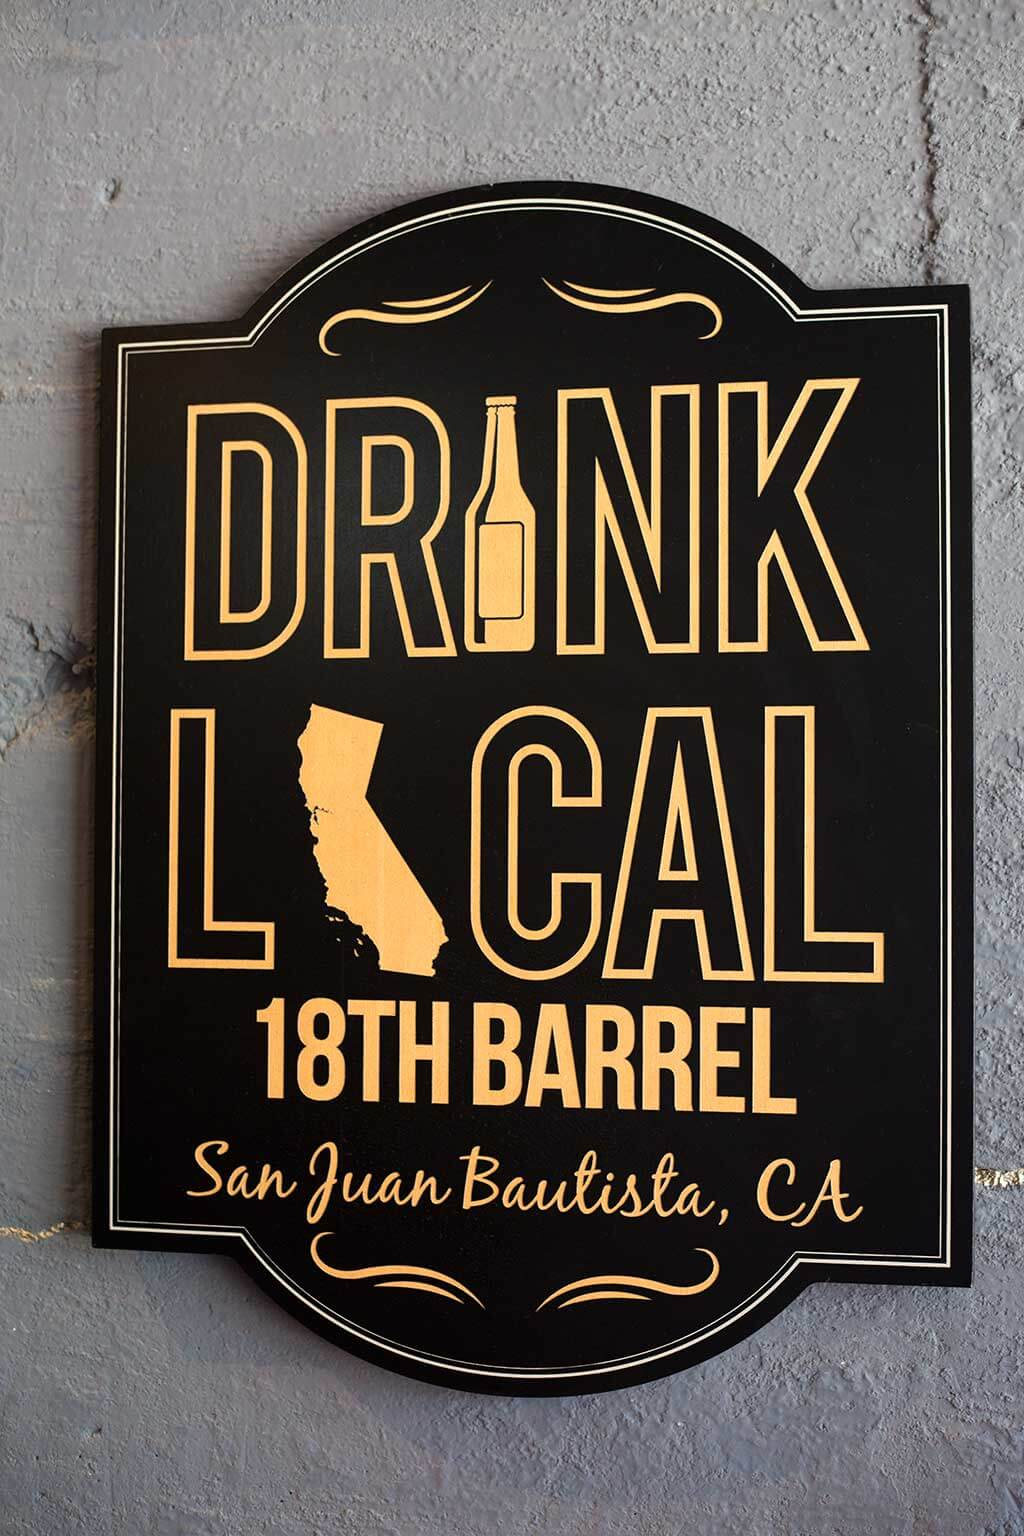 drive-swim-fly-18th-barrel-wine-and-beer-tasting-room-san-juan-bautista-california-alcohol-drink-local-sign